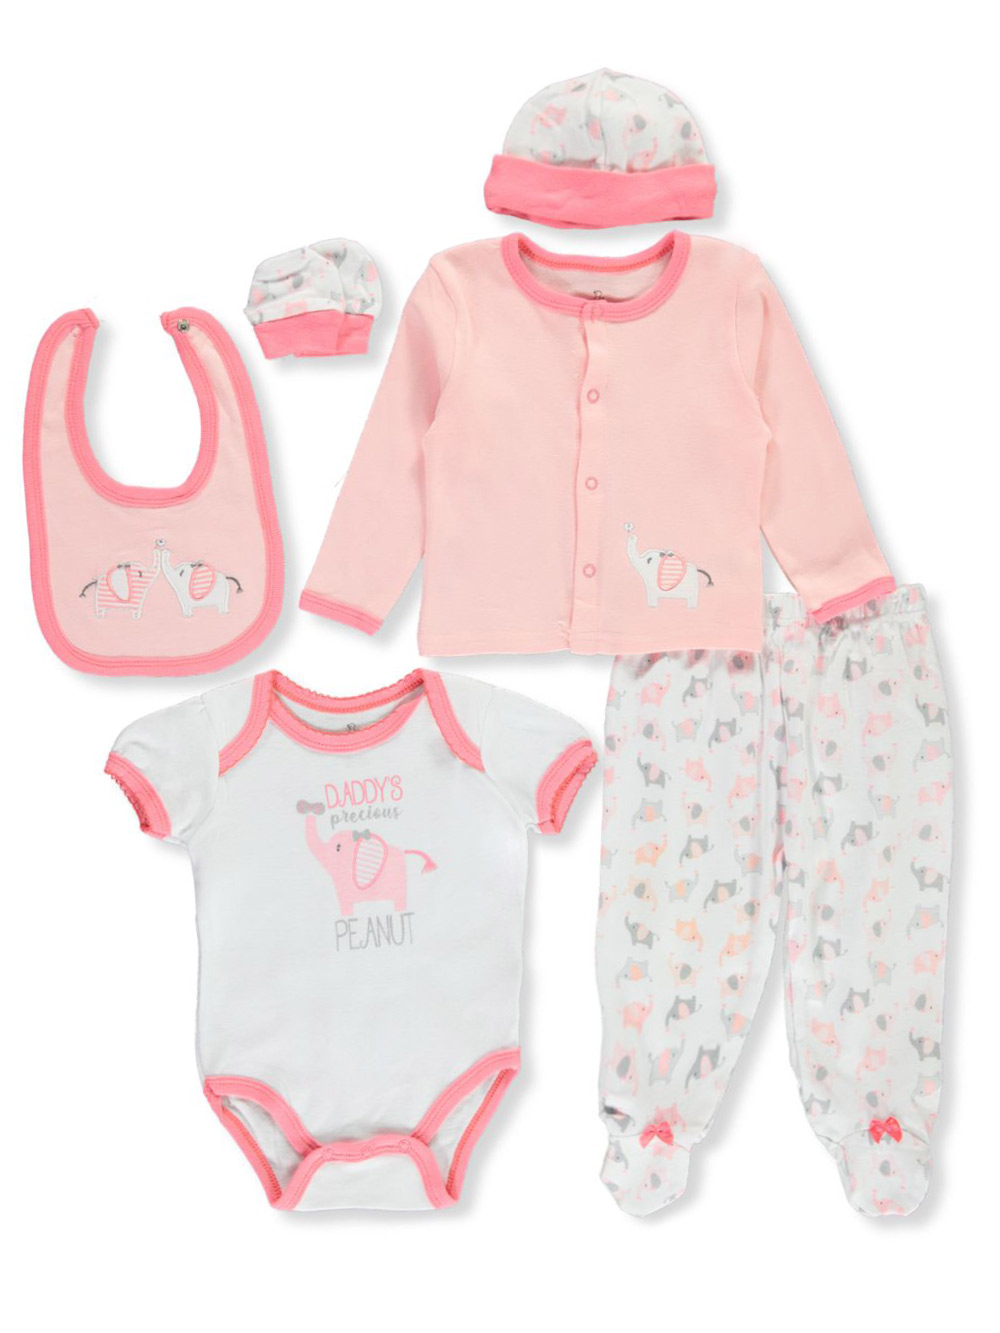 Gift Sets 8-Piece Layette Set